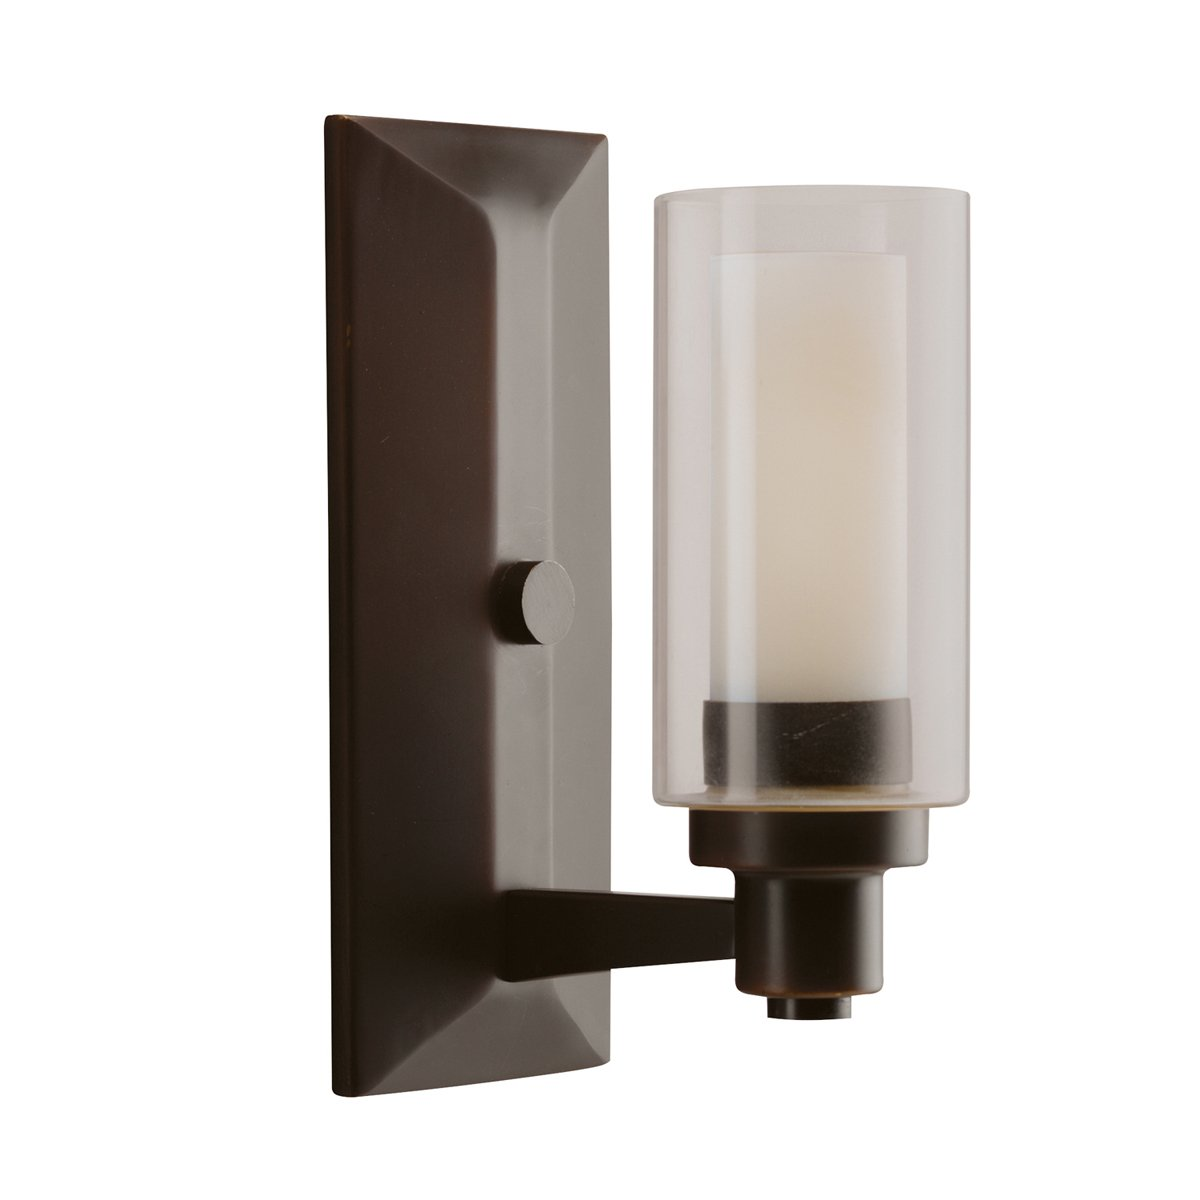 Kichler brushed nickel wall mt 1lt incandescent kichler brushed nickel - Kichler Lighting 6144ni Circolo 1 Light Wall Sconce Brushed Nickel With Clear Glass Cylinders And Satin Etched Inner Cylinders Amazon Com